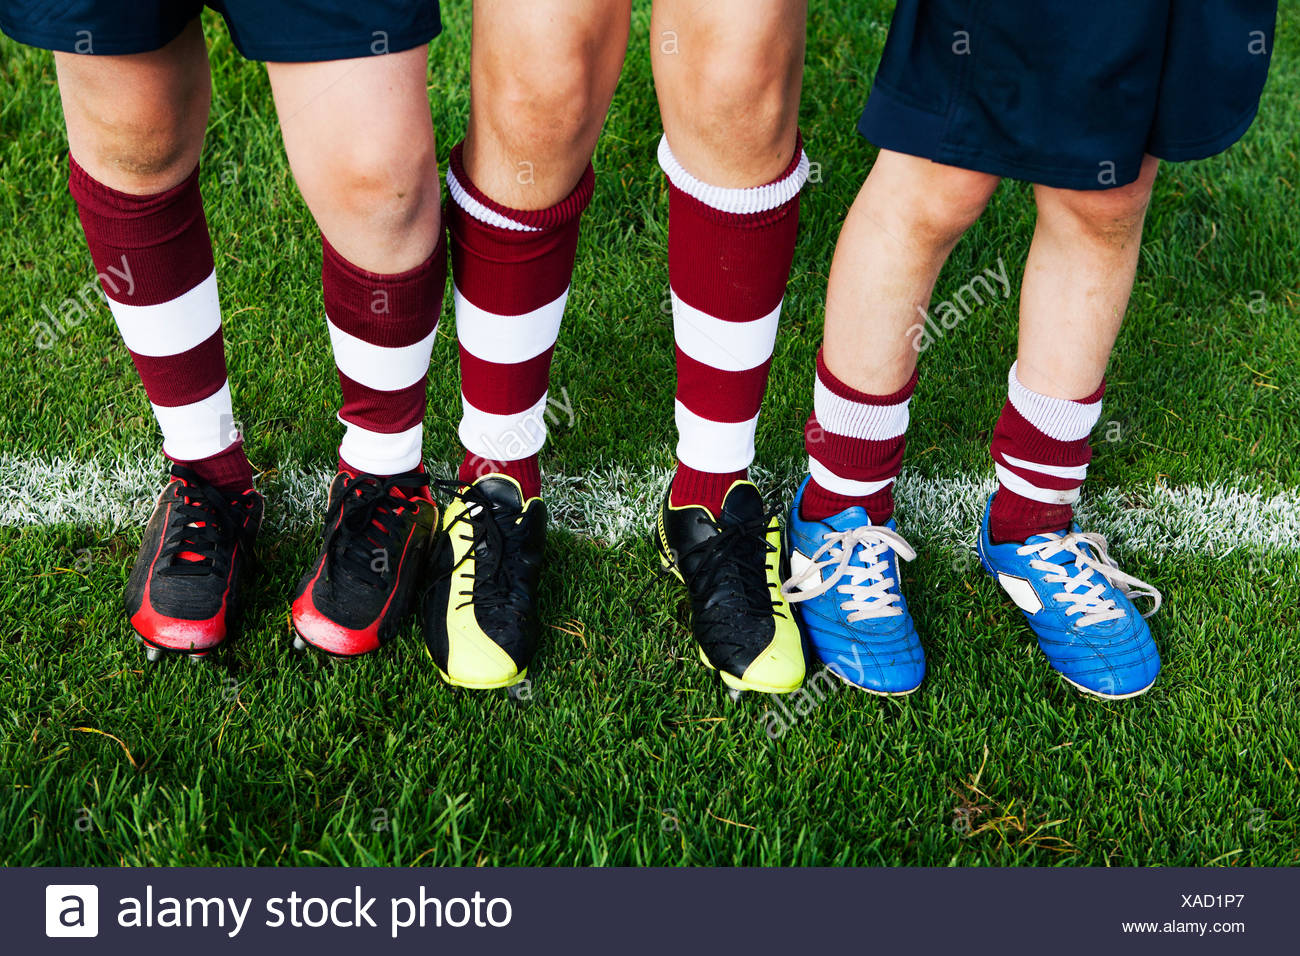 Legs and feet of three schoolboy rugby players - Stock Image